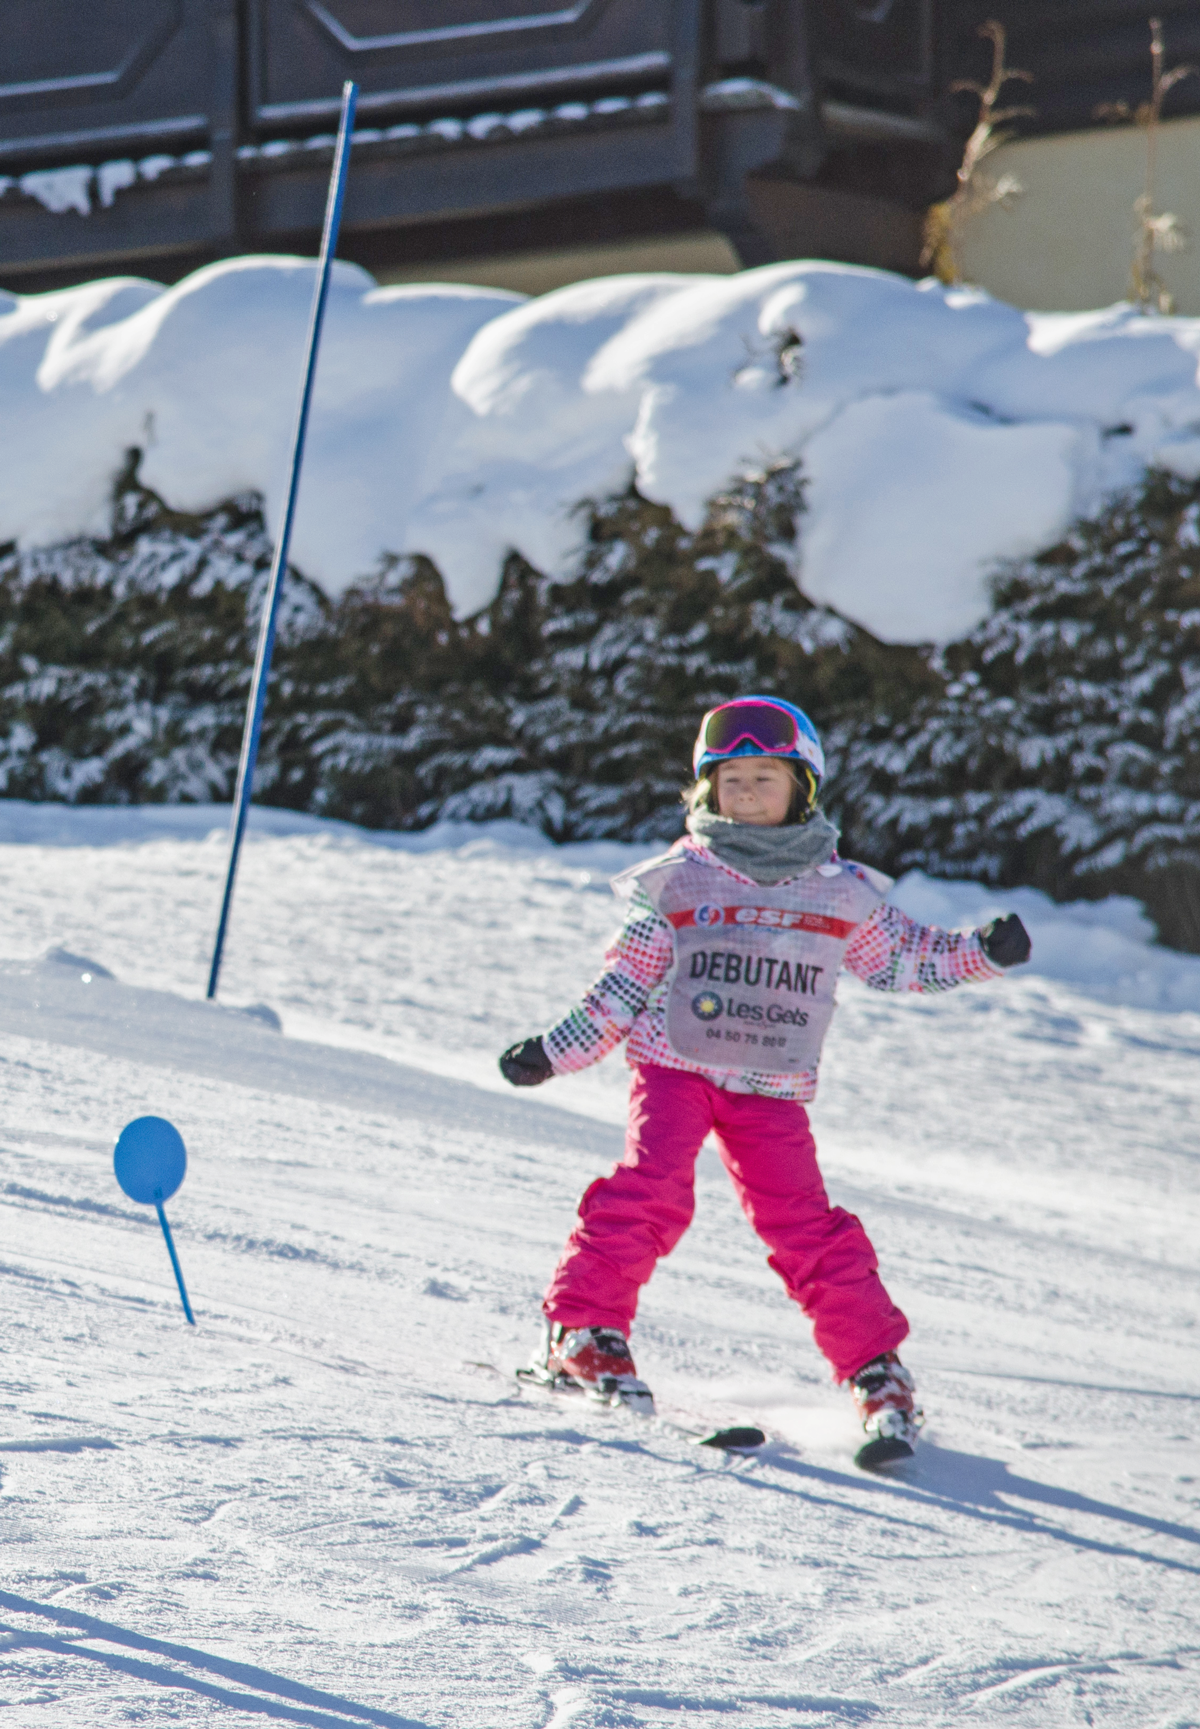 Group ski lessons with ESF for children